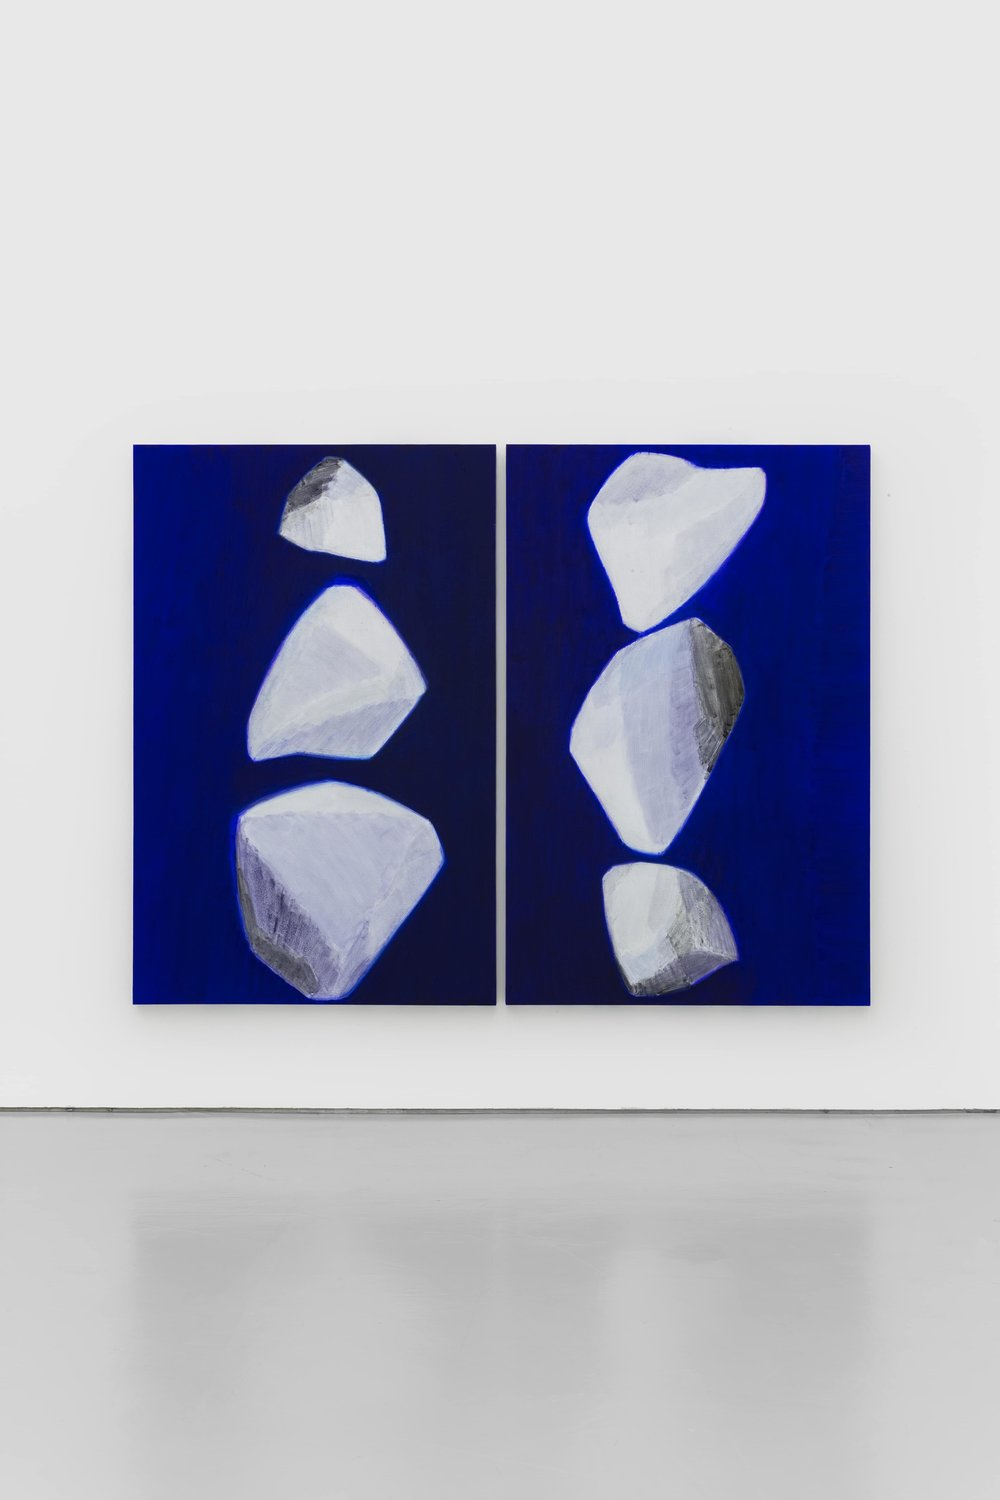 石至莹 Shi Zhiying | 白石 No.3 & No.2 White Stones No.3 & No.2 | 布面油画 Oil on Canvas | 200 x 130 cm x 2 | 2017 - Courtesy the artist and WHITE SPACE BEIJING.JPG